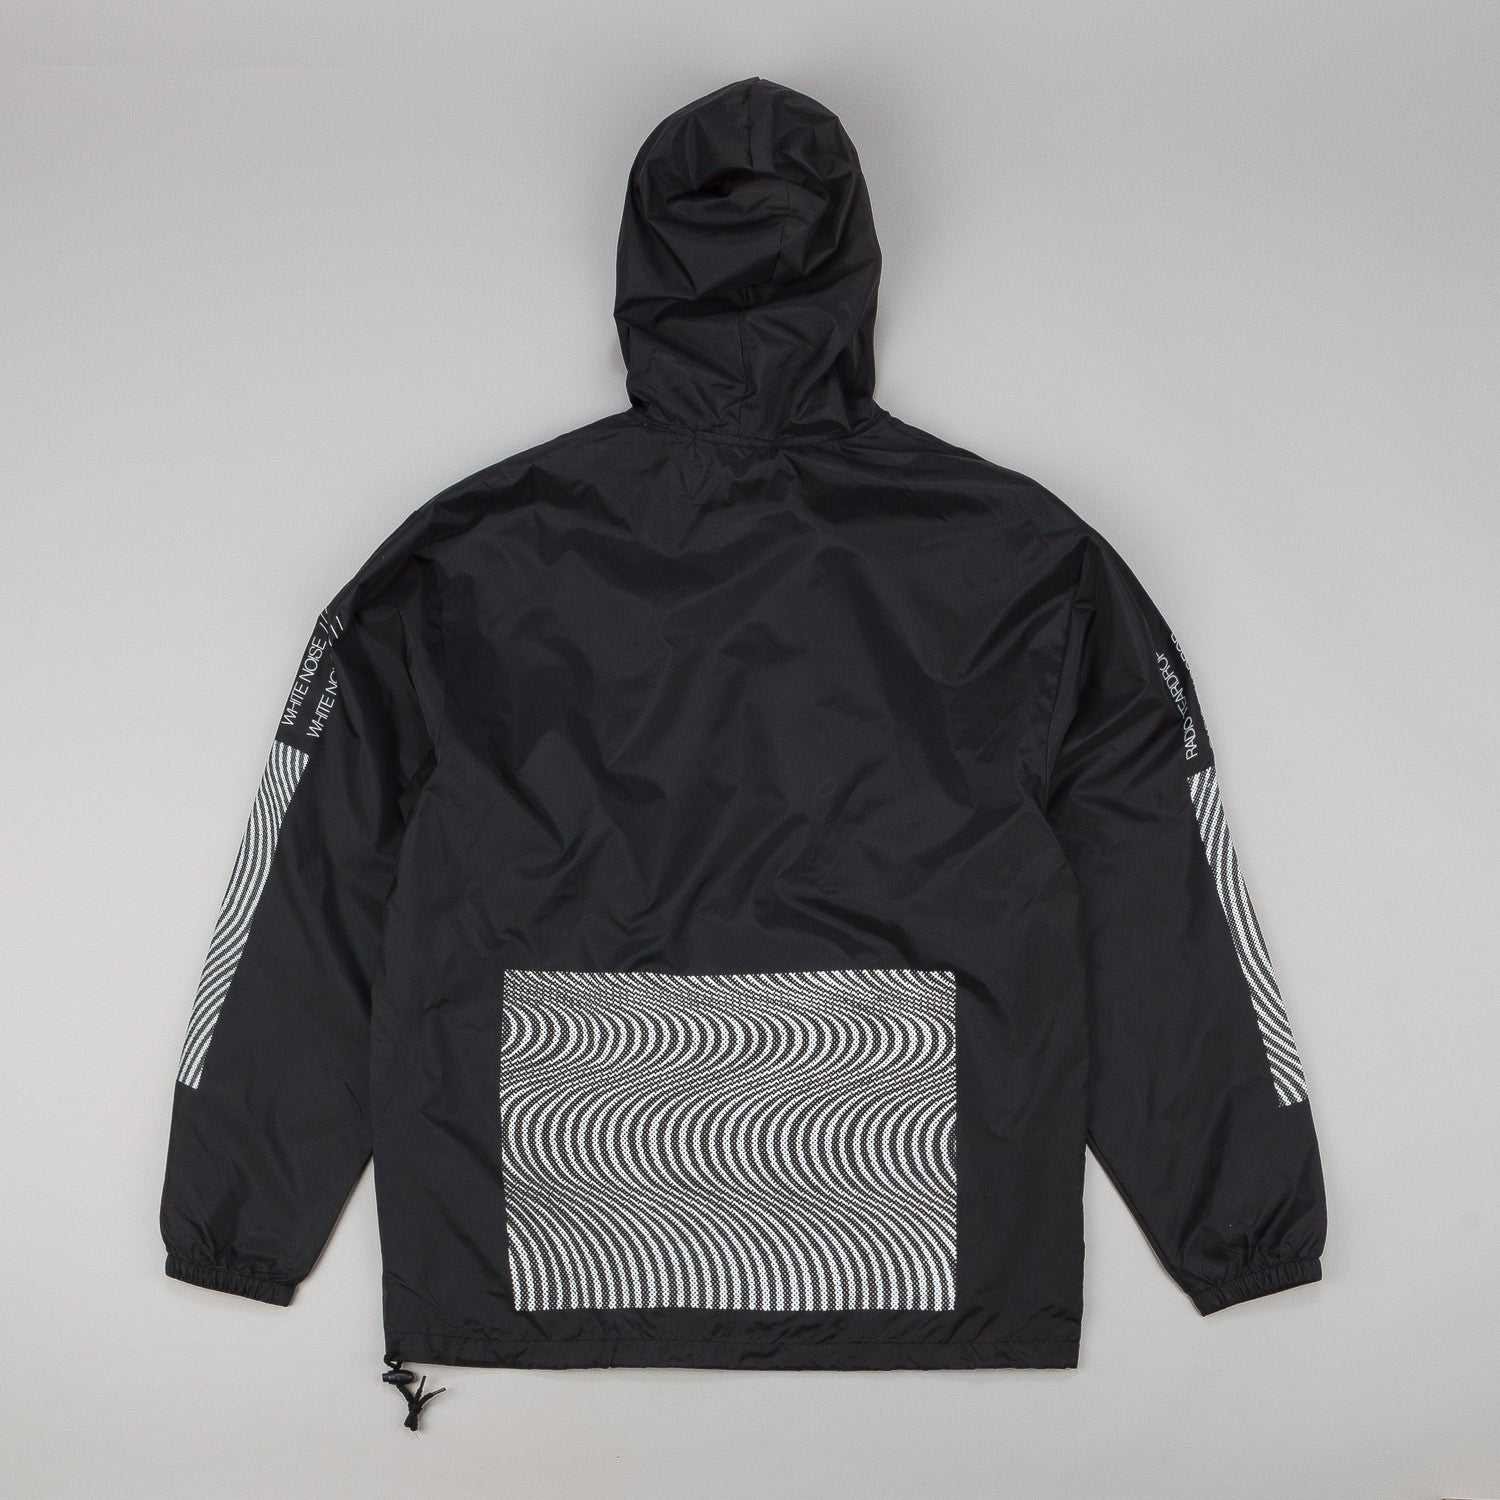 MN07 Radio Tear Drop Packable Jacket - Black